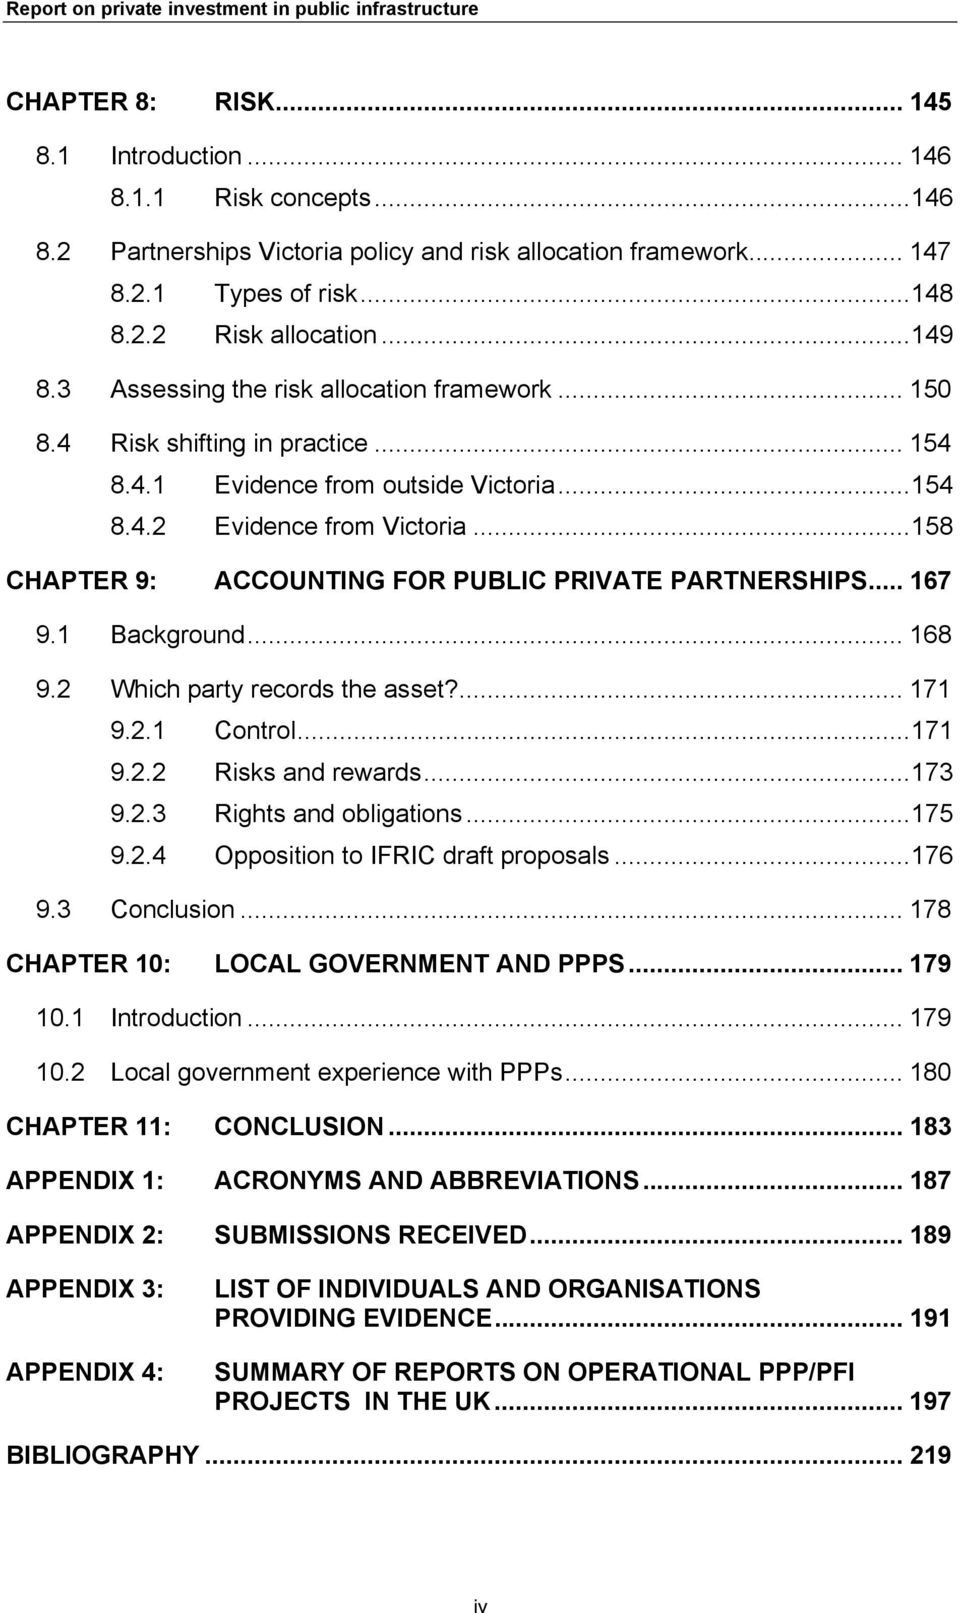 ..158 CHAPTER 9: ACCOUNTING FOR PUBLIC PRIVATE PARTNERSHIPS... 167 9.1 Background... 168 9.2 Which party records the asset?... 171 9.2.1 Control...171 9.2.2 Risks and rewards...173 9.2.3 Rights and obligations.